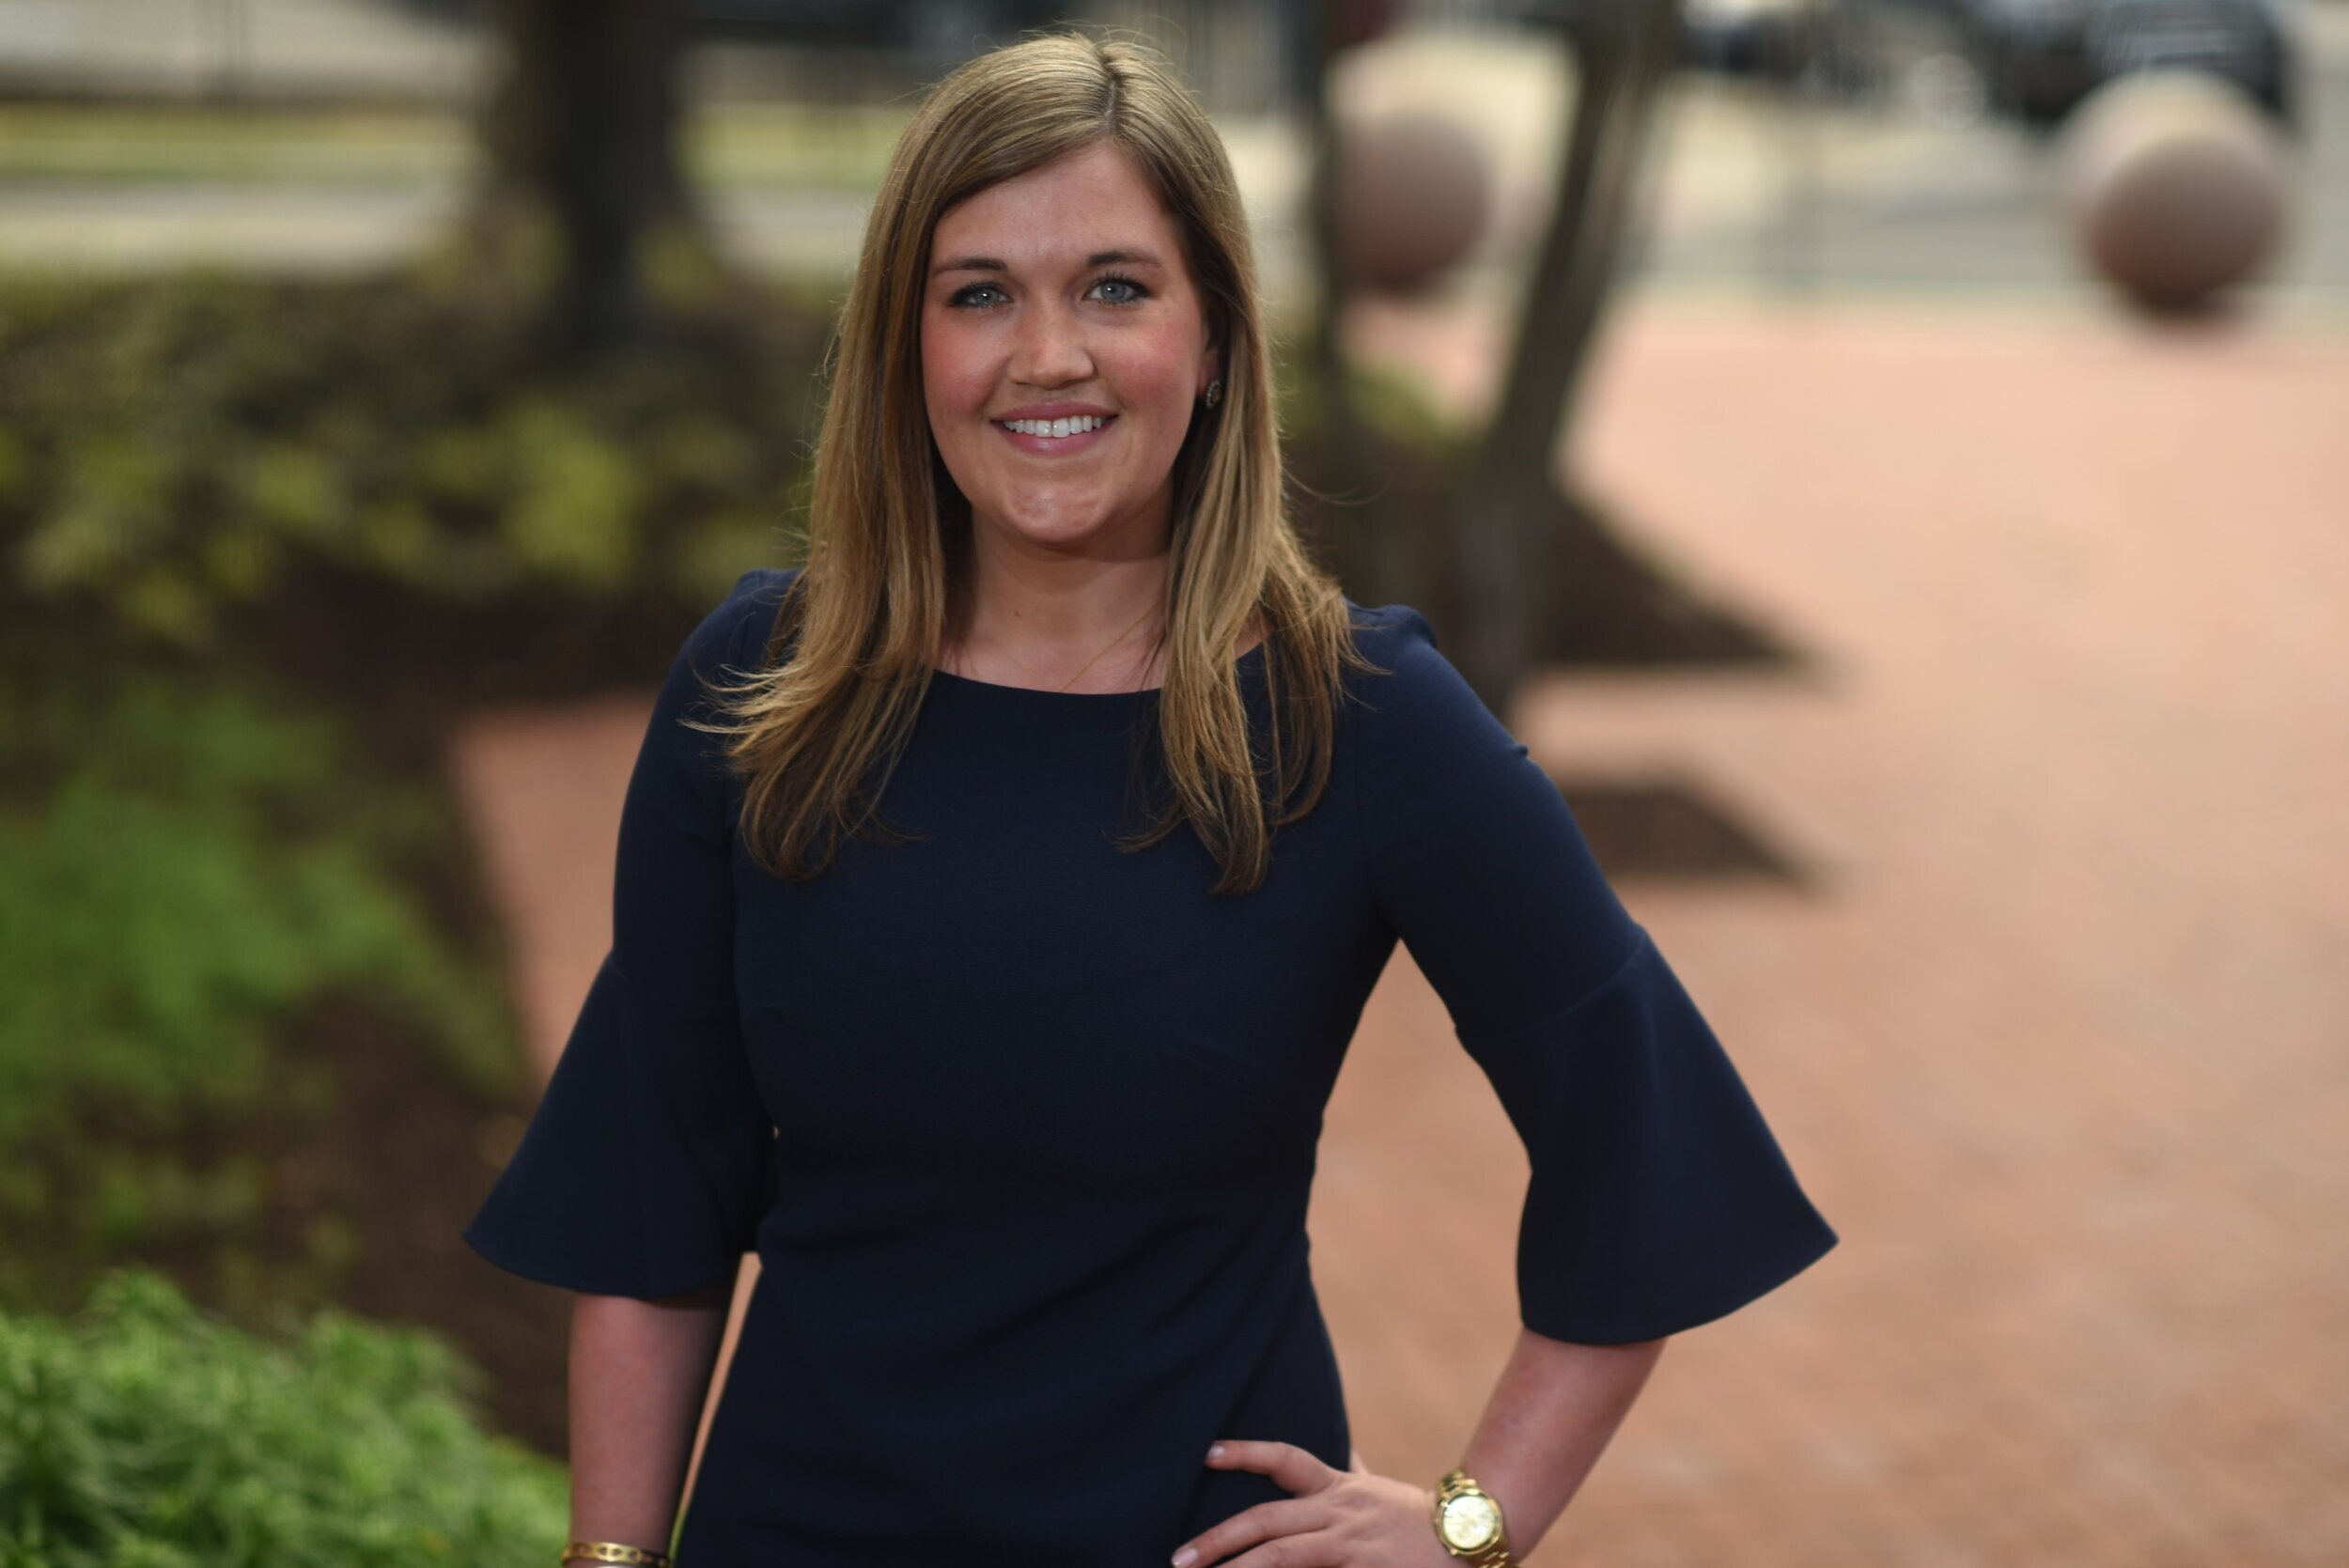 MEREDITH KELLY - Meredith is a nationally recognized communicator for House, Senate and presidential races.